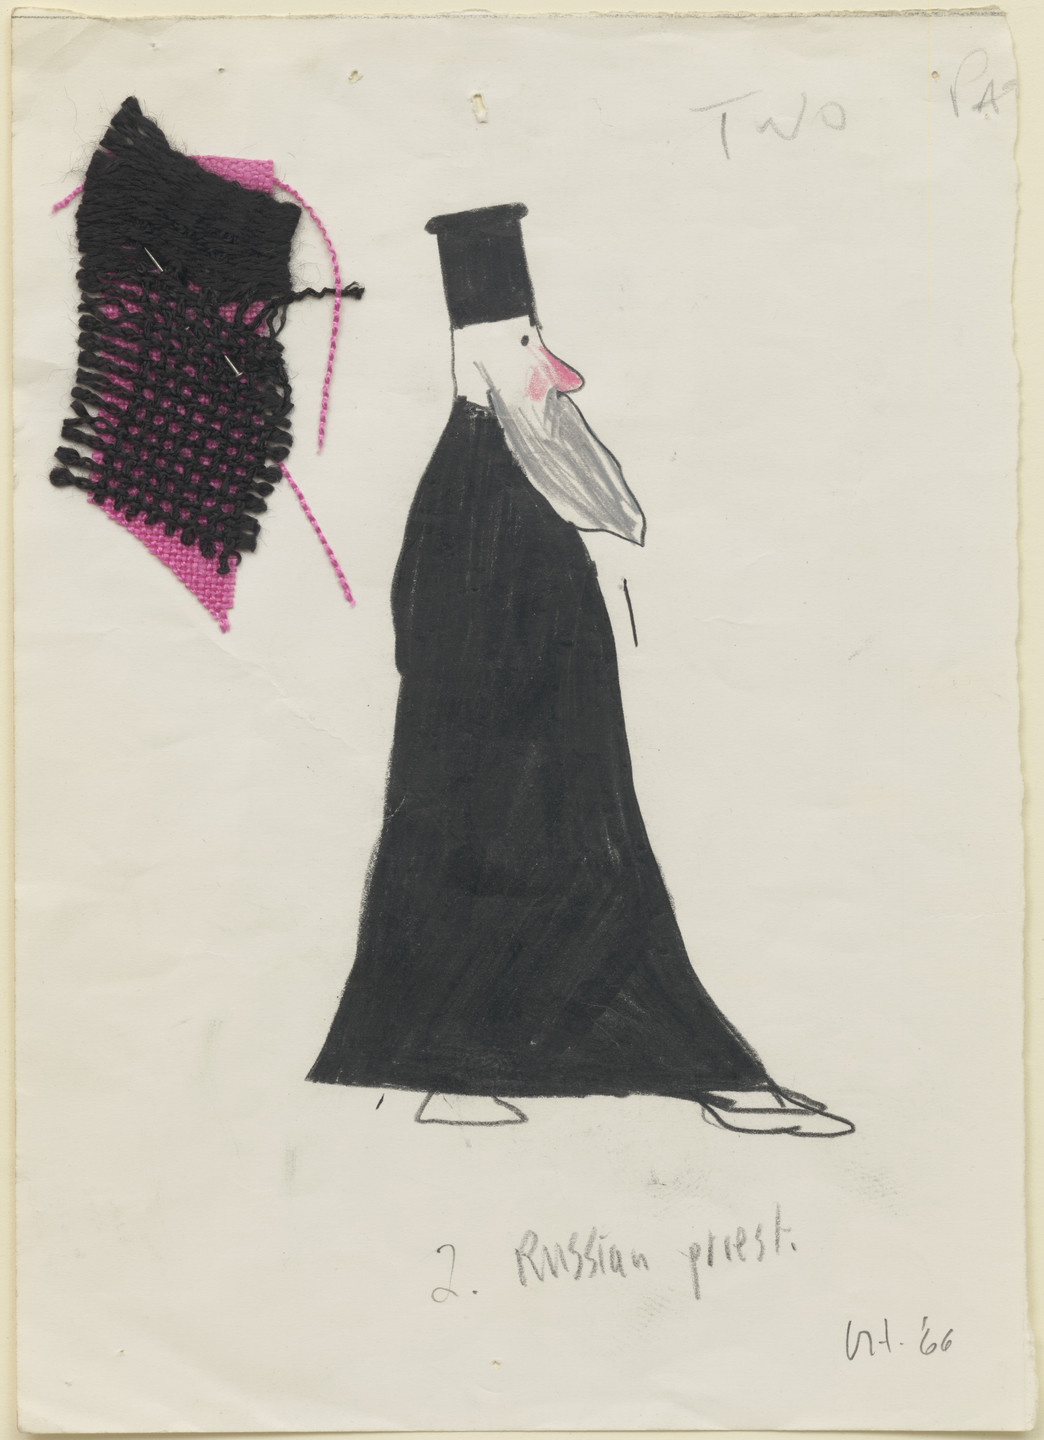 David Hockney. Russian Priest. Costume design for the play Ubu Roi. 1966